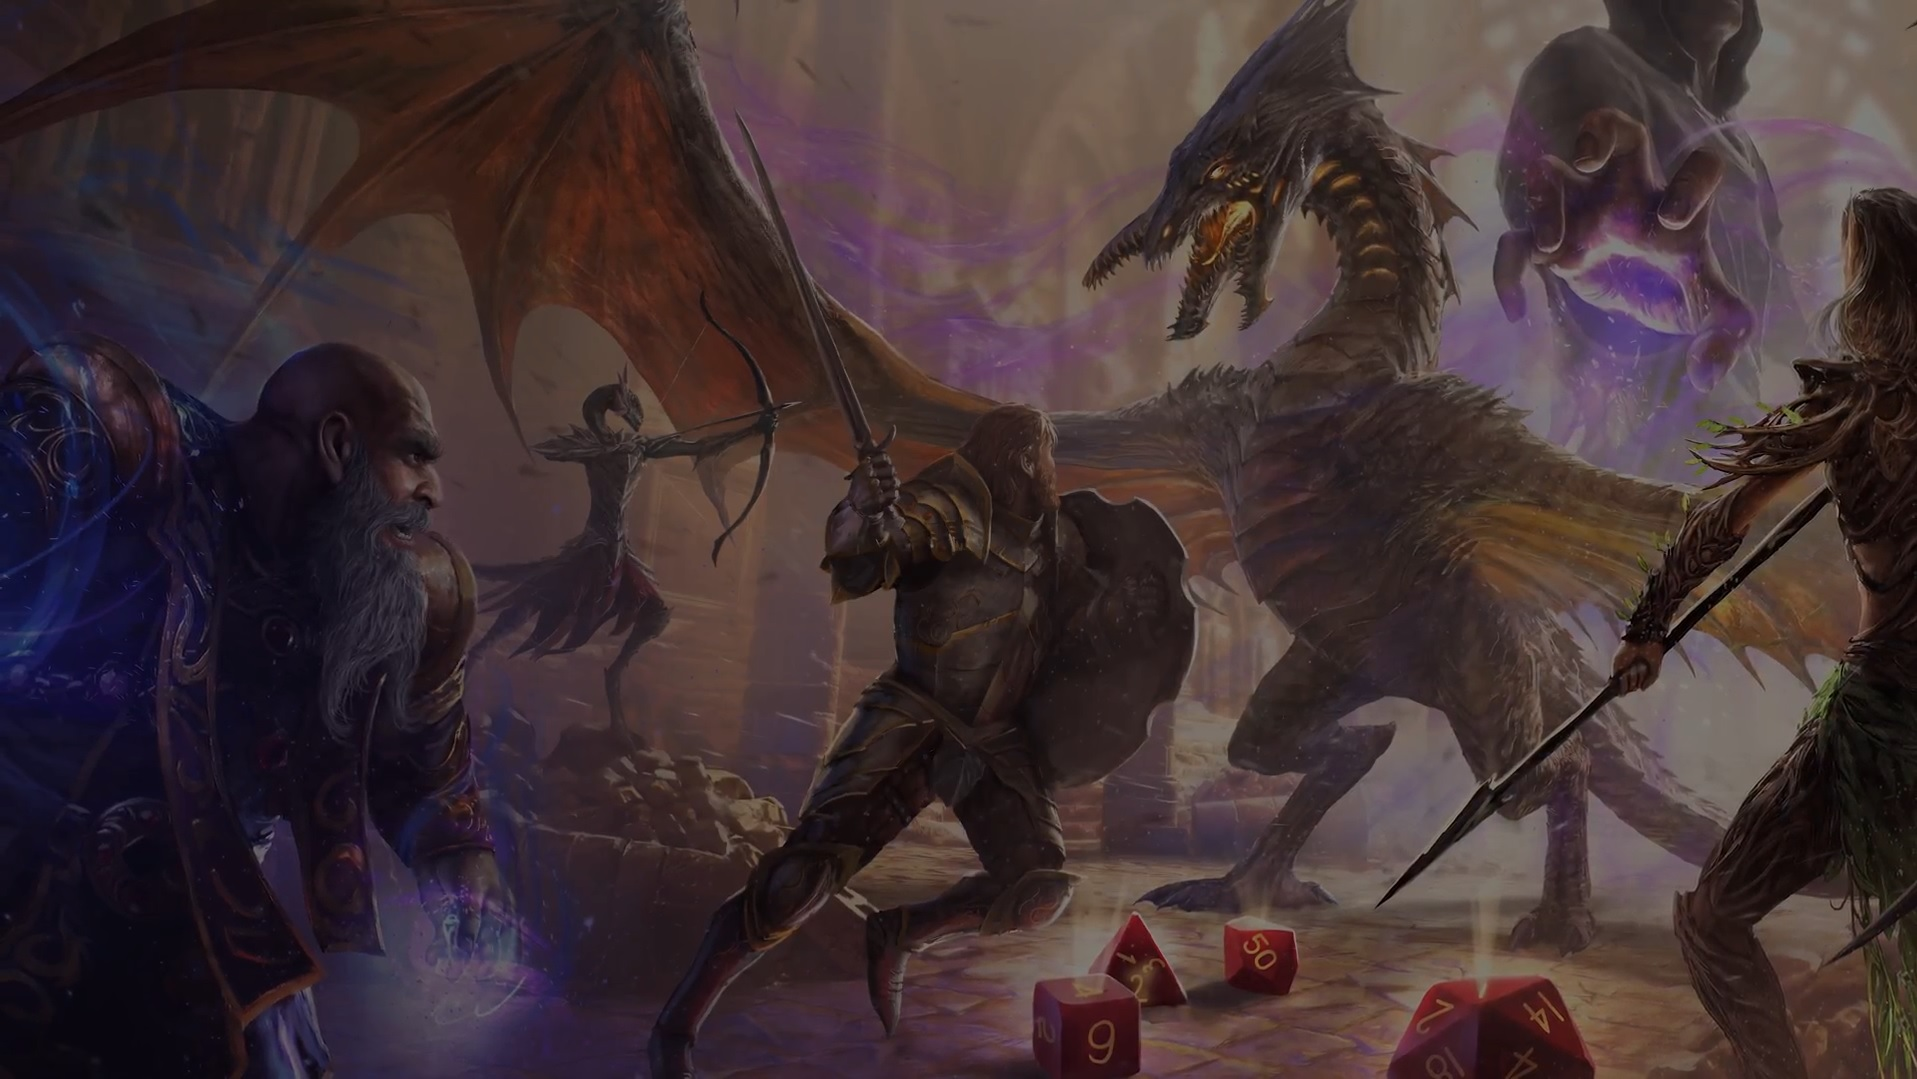 Divinity: Original Sin 2's free Game Master campaign is set in the